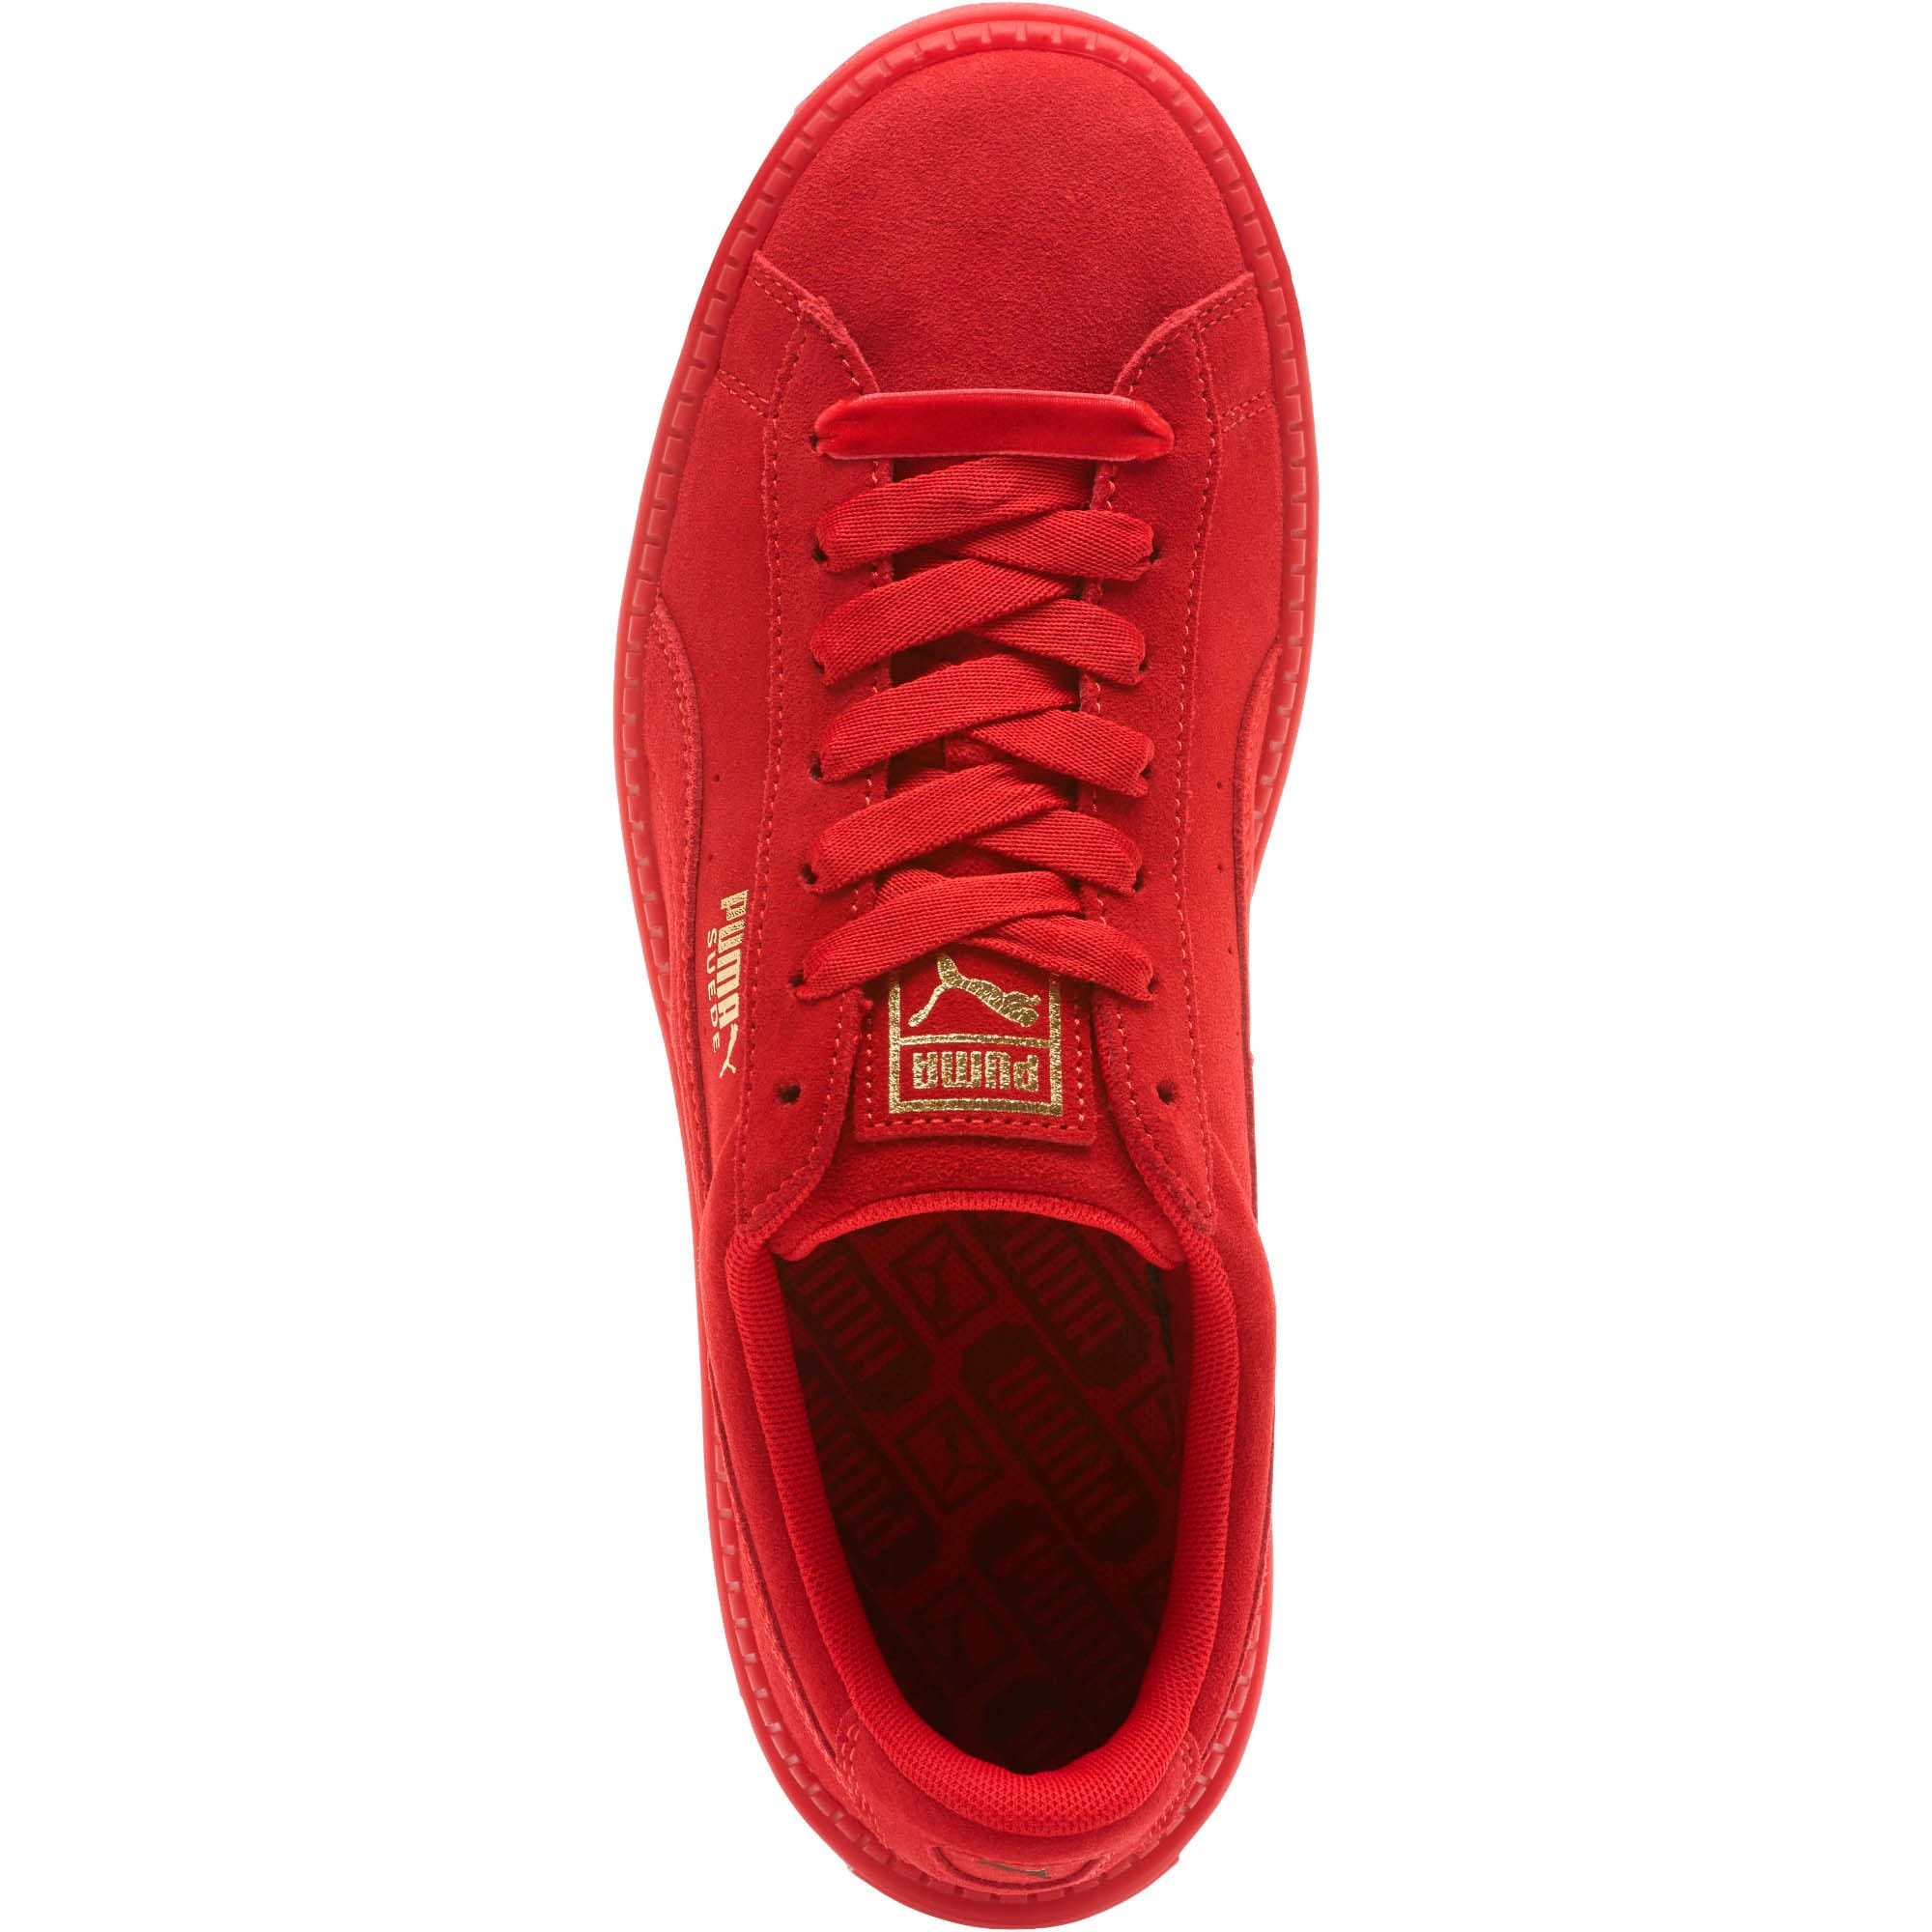 Thumbnail 5 of Suede Platform Trace Valentine's Day Women's Sneakers, Red Dahlia-Barbados Cherry, medium